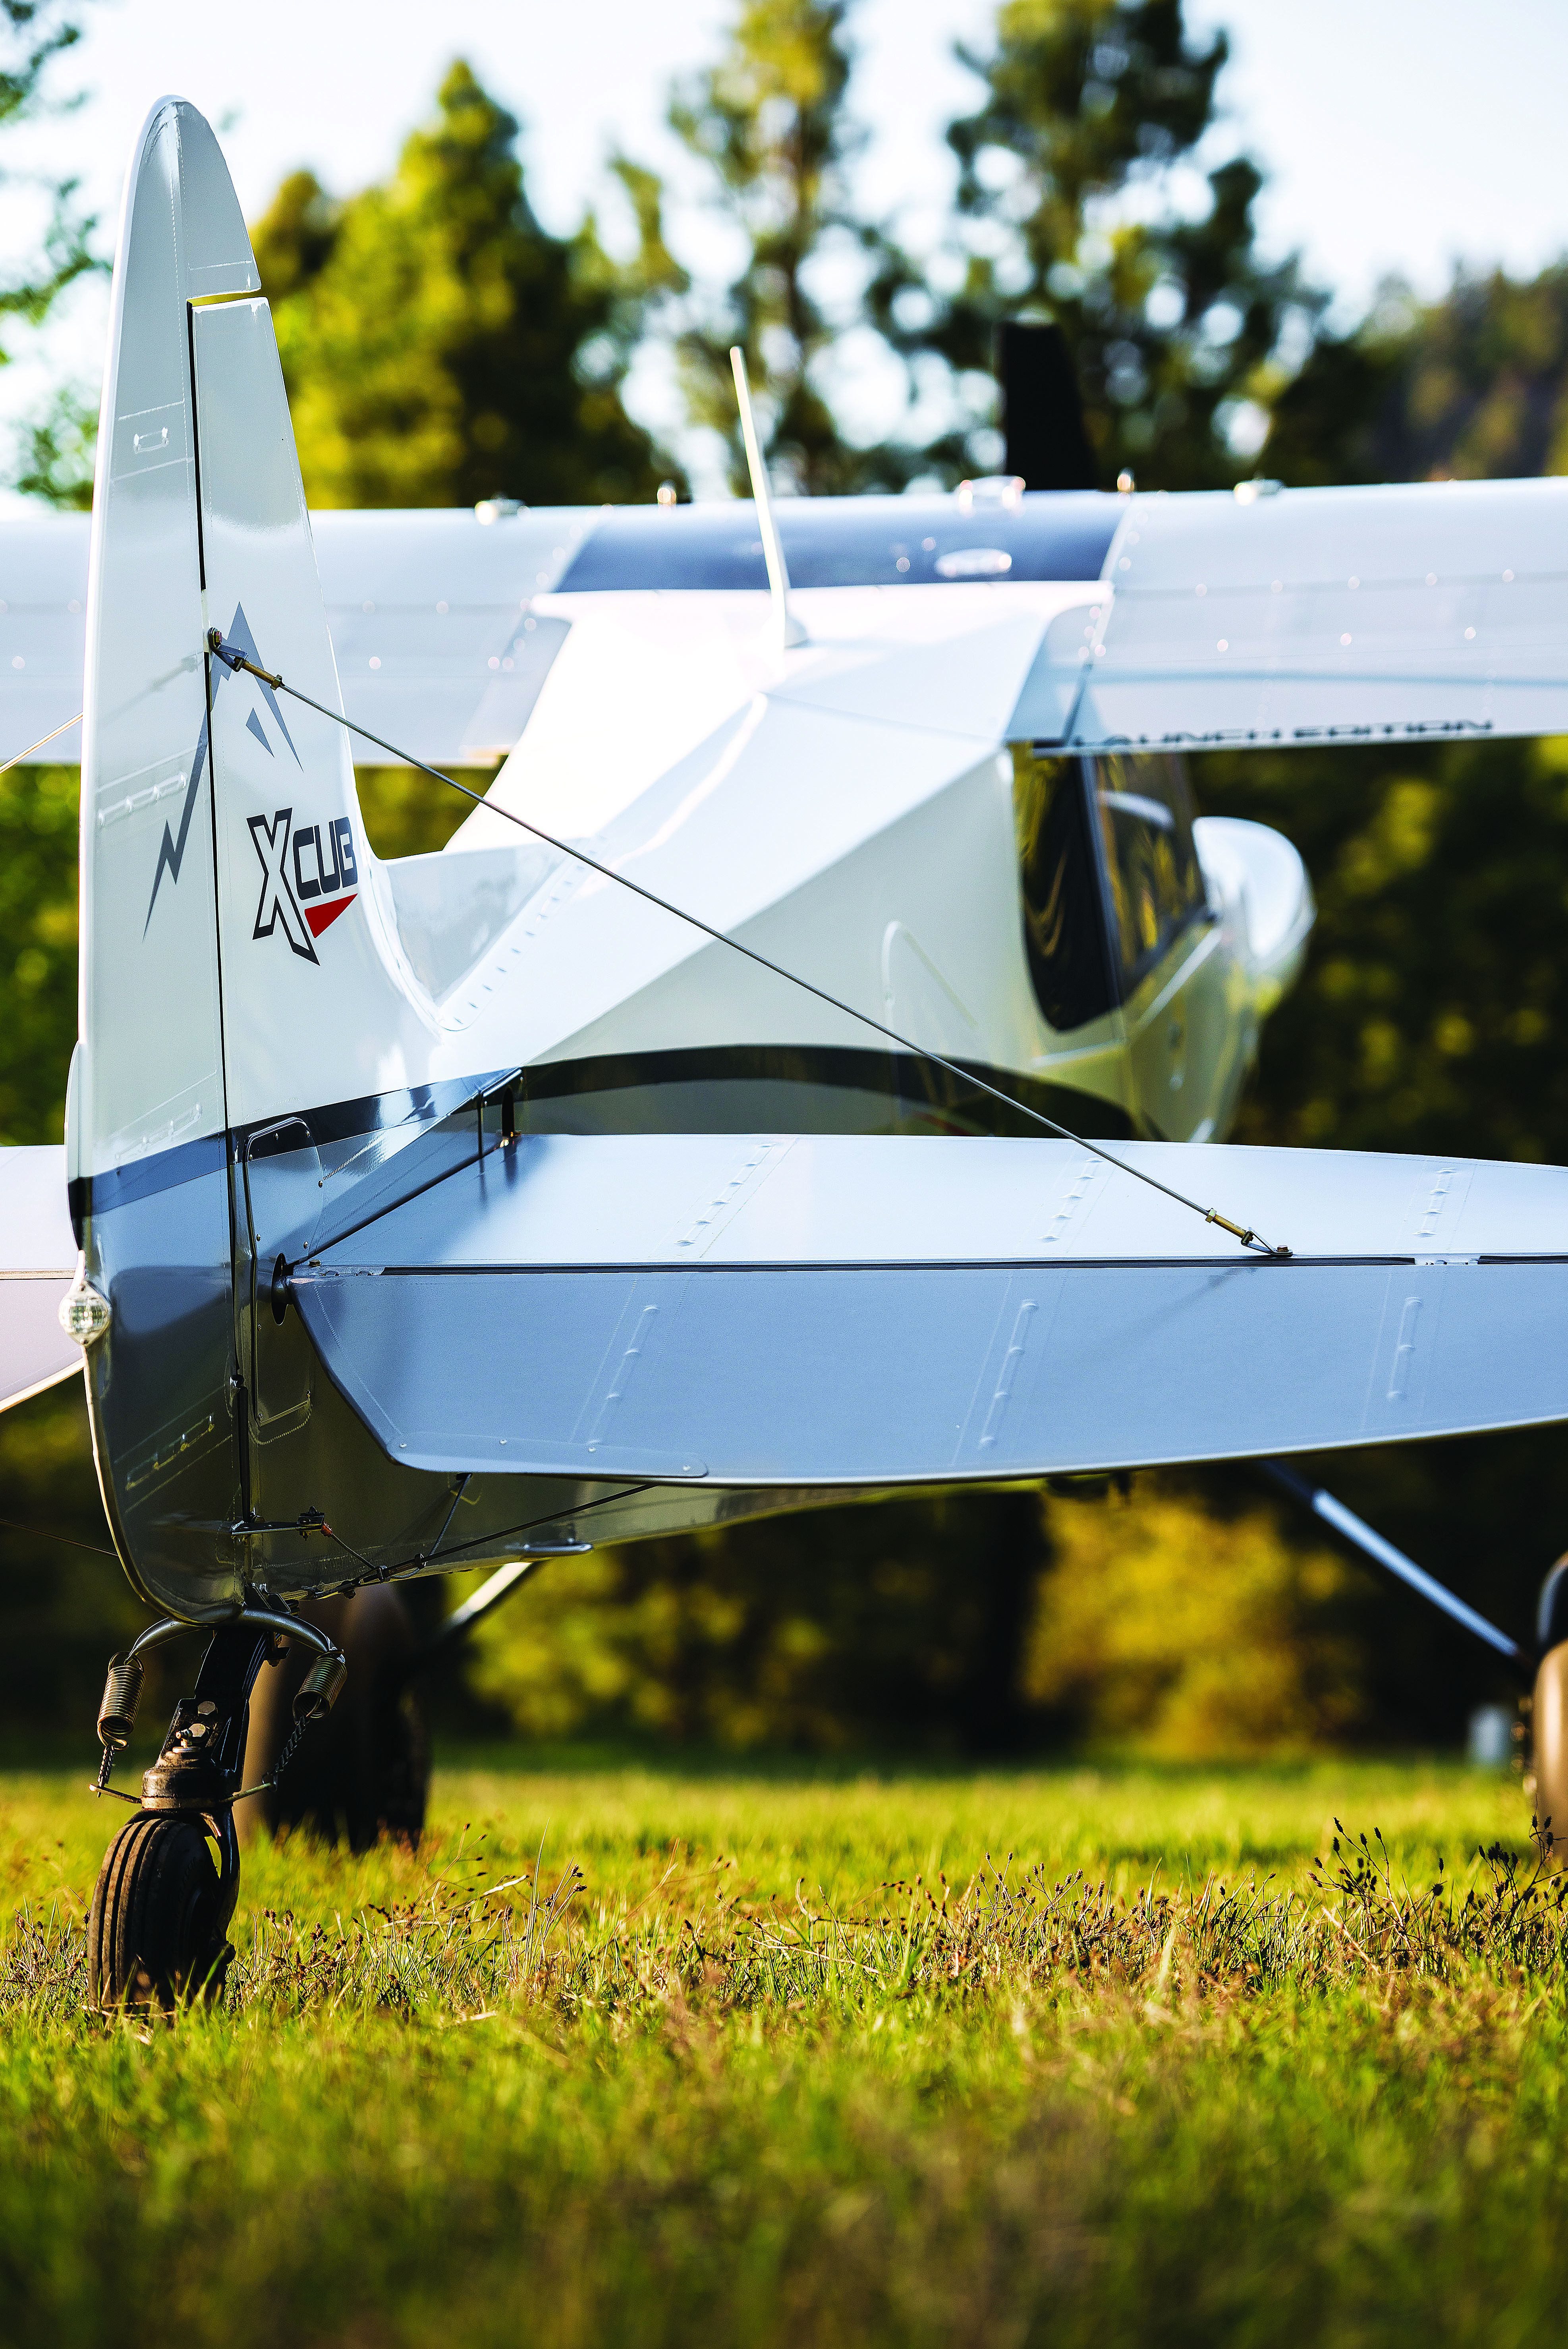 The CubCrafters XCub Is an Ideal Backcountry Machine | Flying